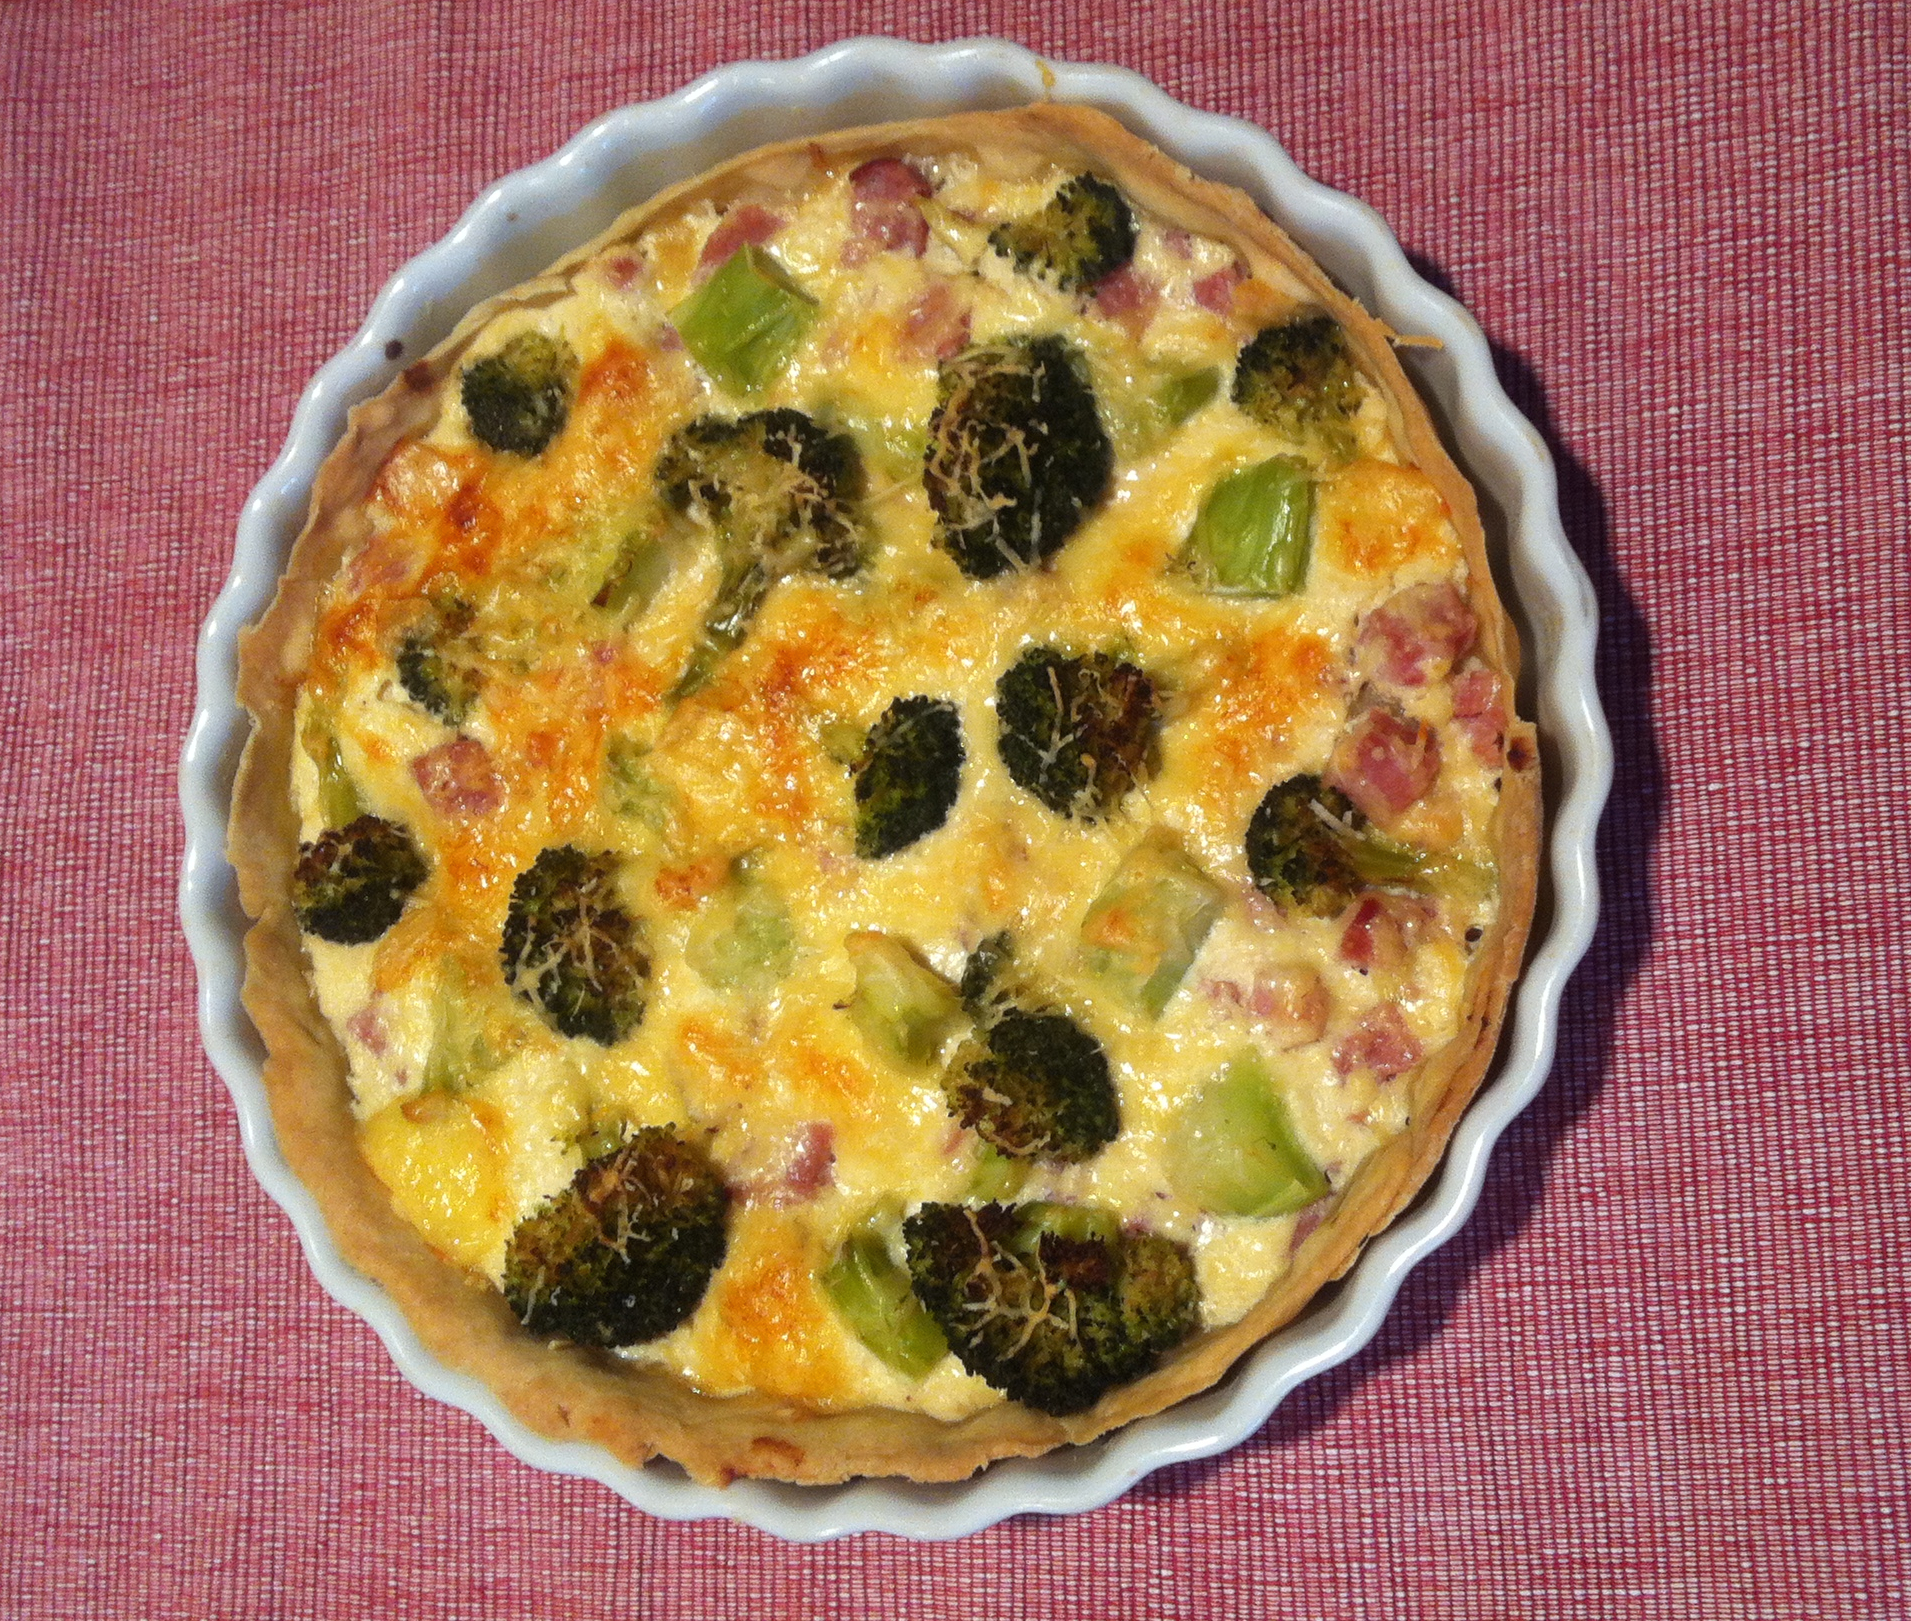 Tarte Brocoli et jambon – Broccoli and ham tart